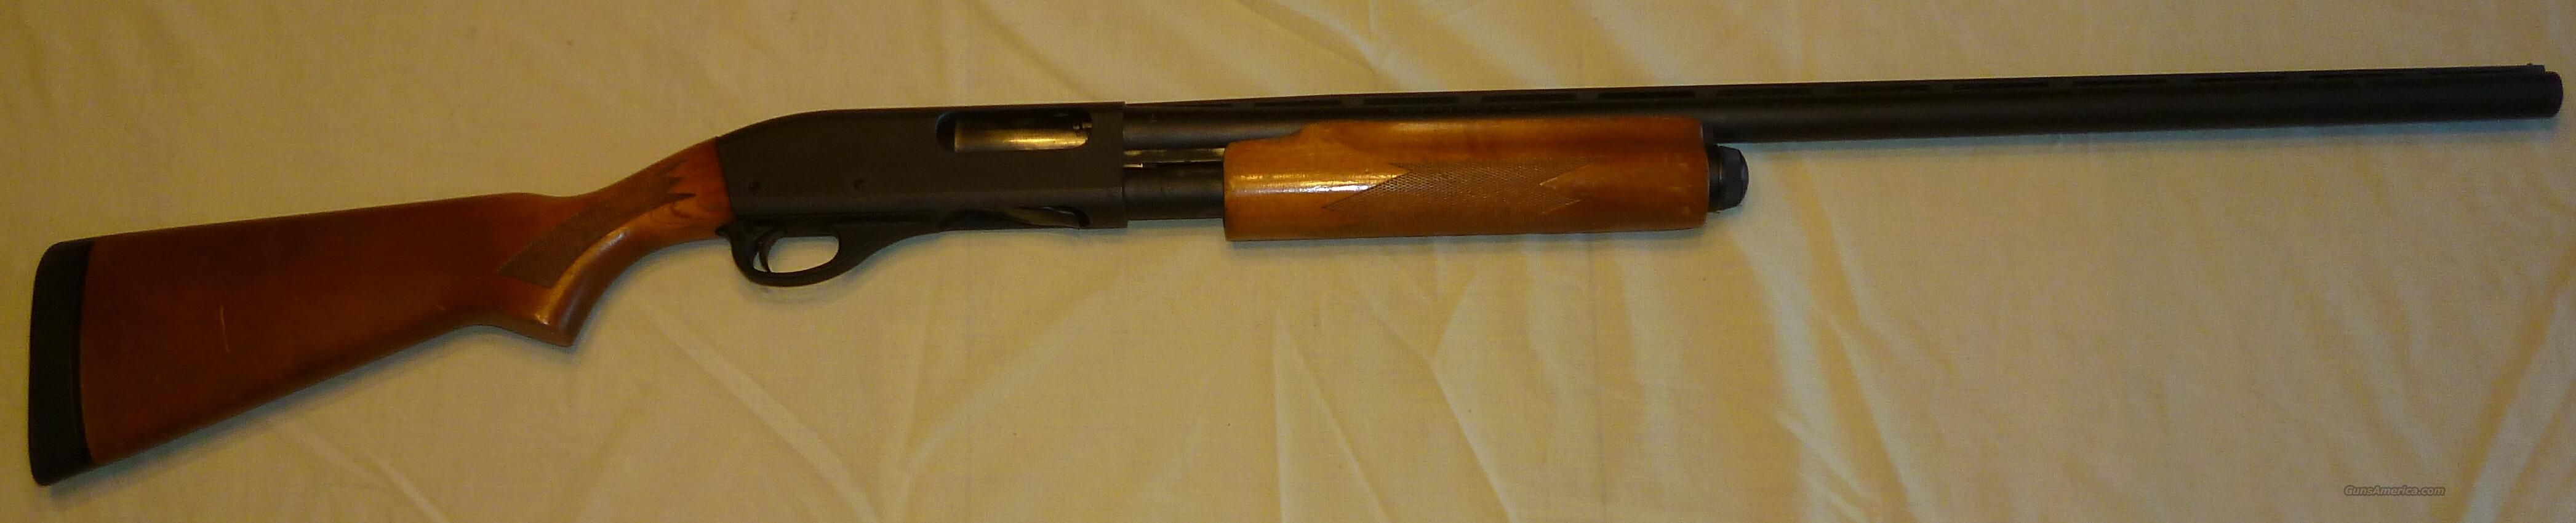 REMINGTON 870 EXPRESS MAGNUM 12GA - FREE SHIPPING  Guns > Shotguns > Remington Shotguns  > Pump > Hunting